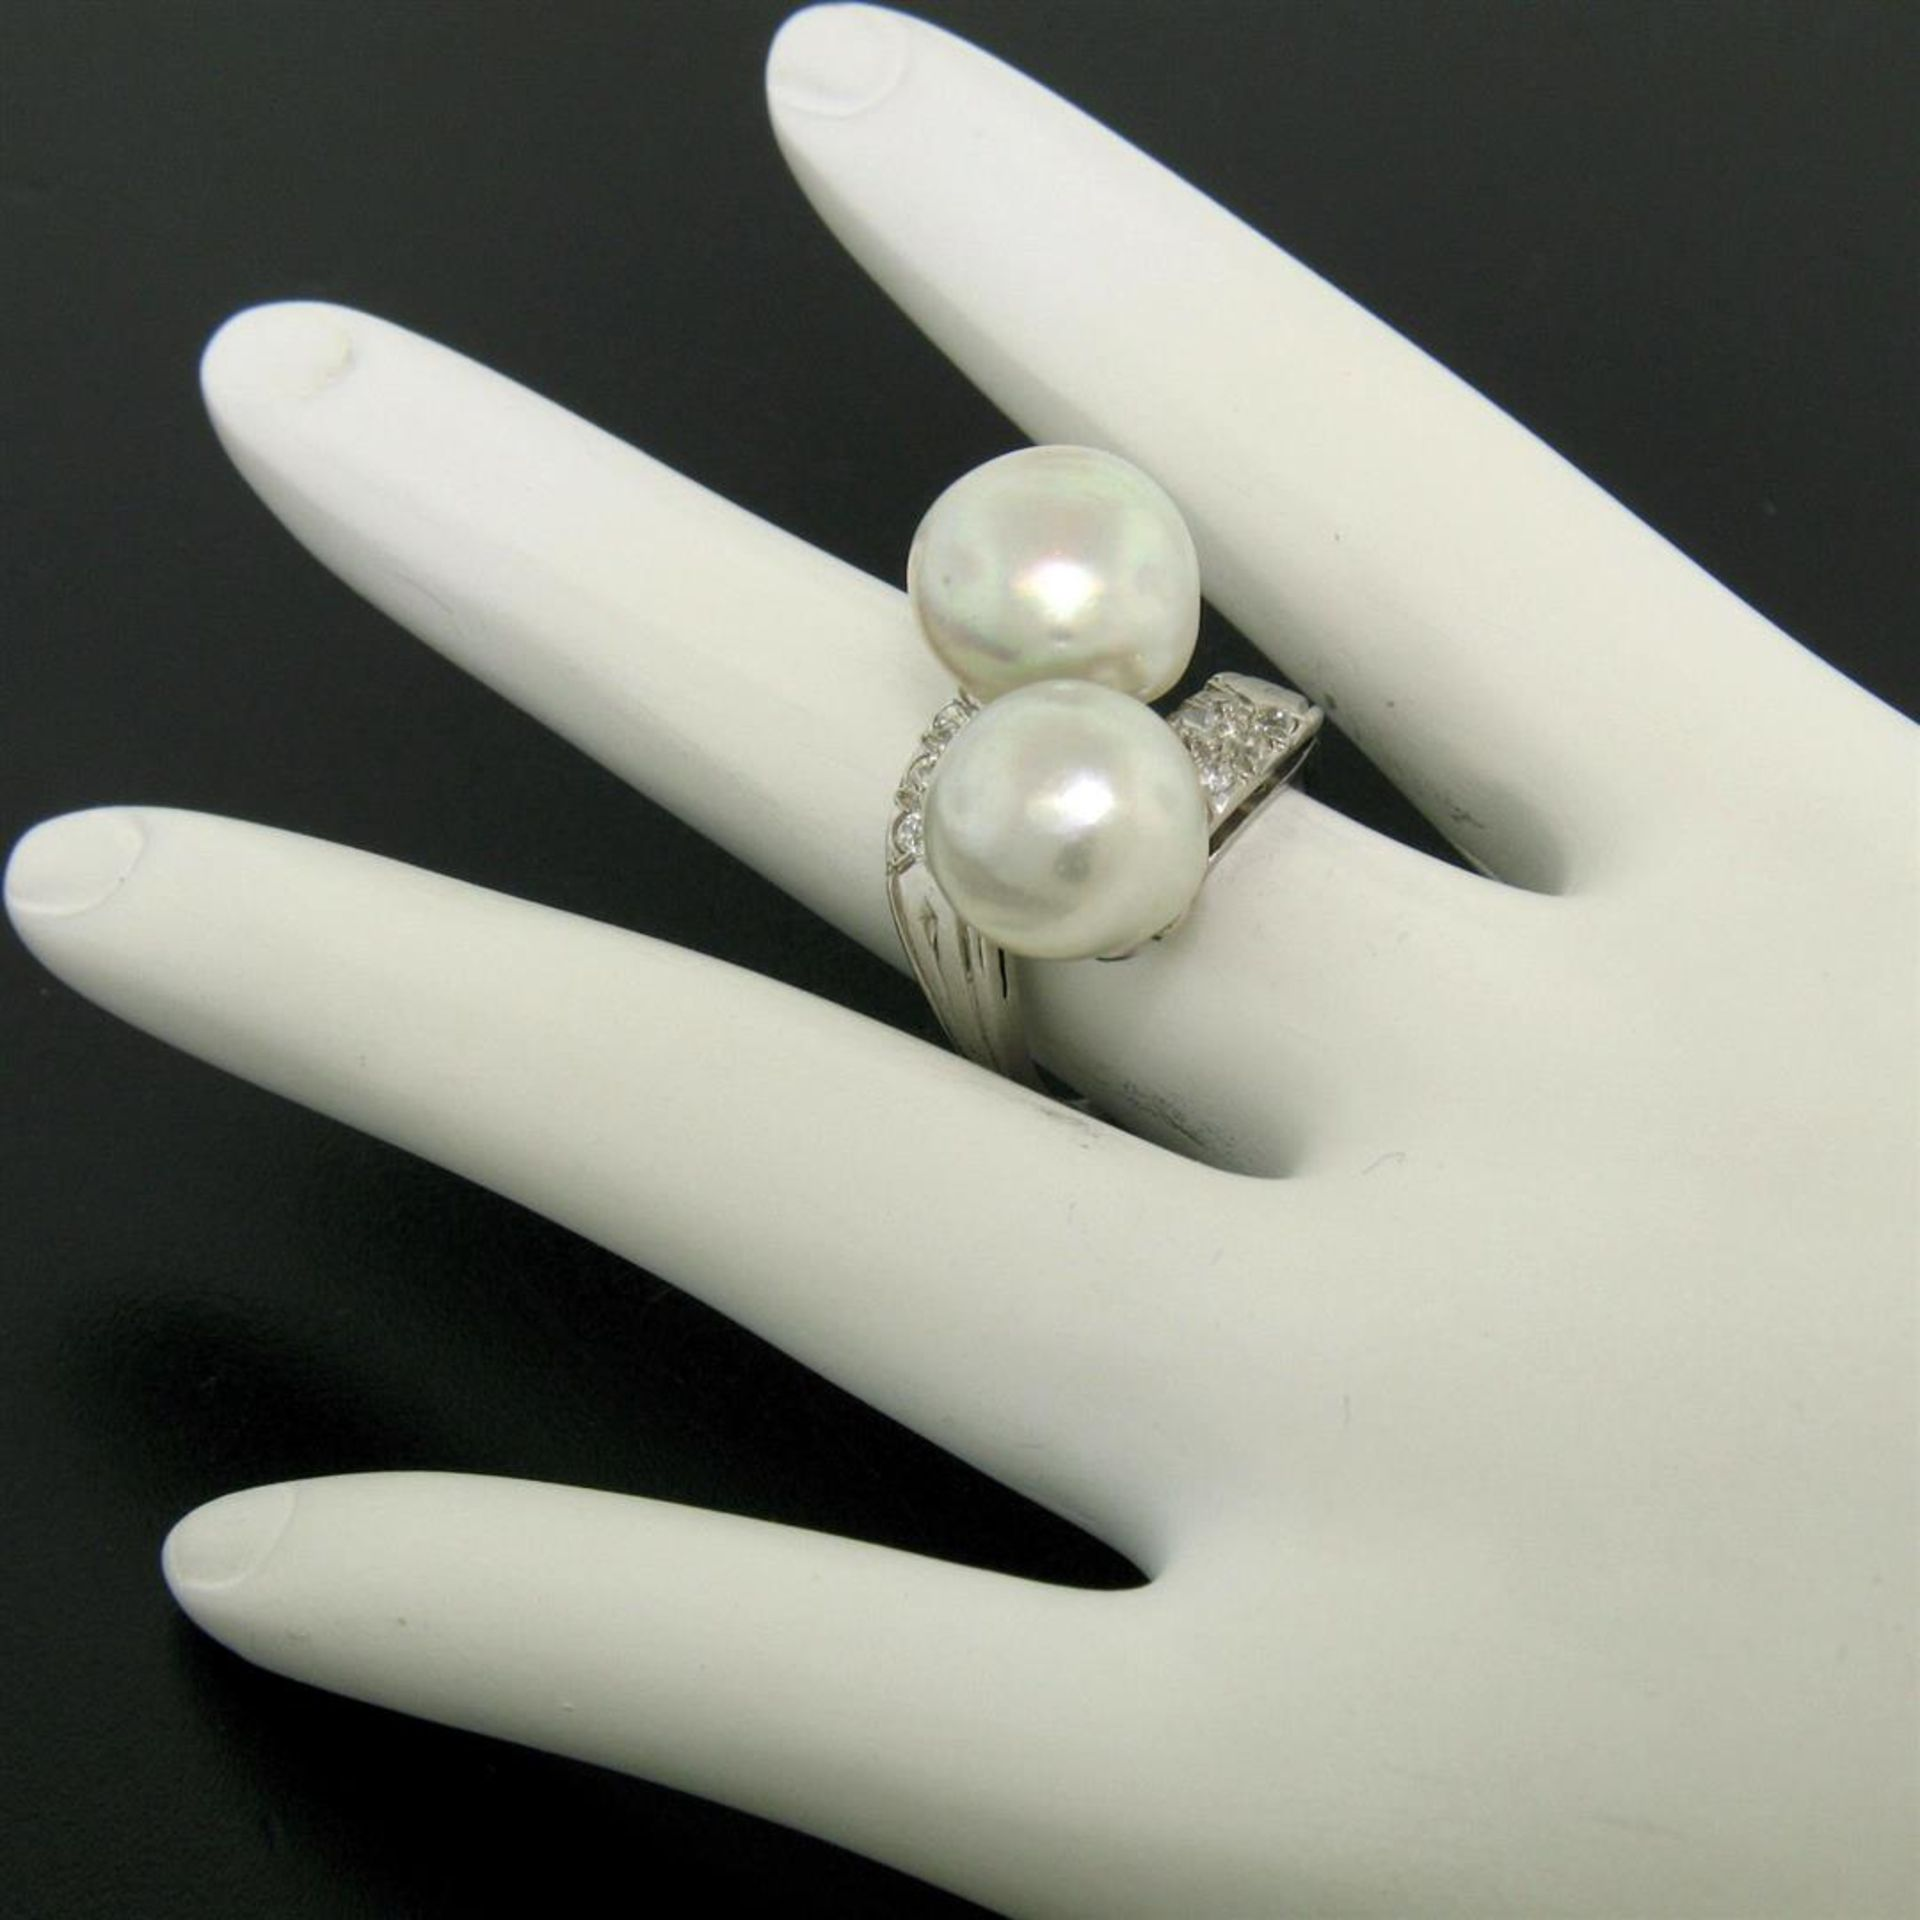 GIA Certified Solid Platinum Pearl & Diamond Bypass Cocktail Ring - Image 3 of 9